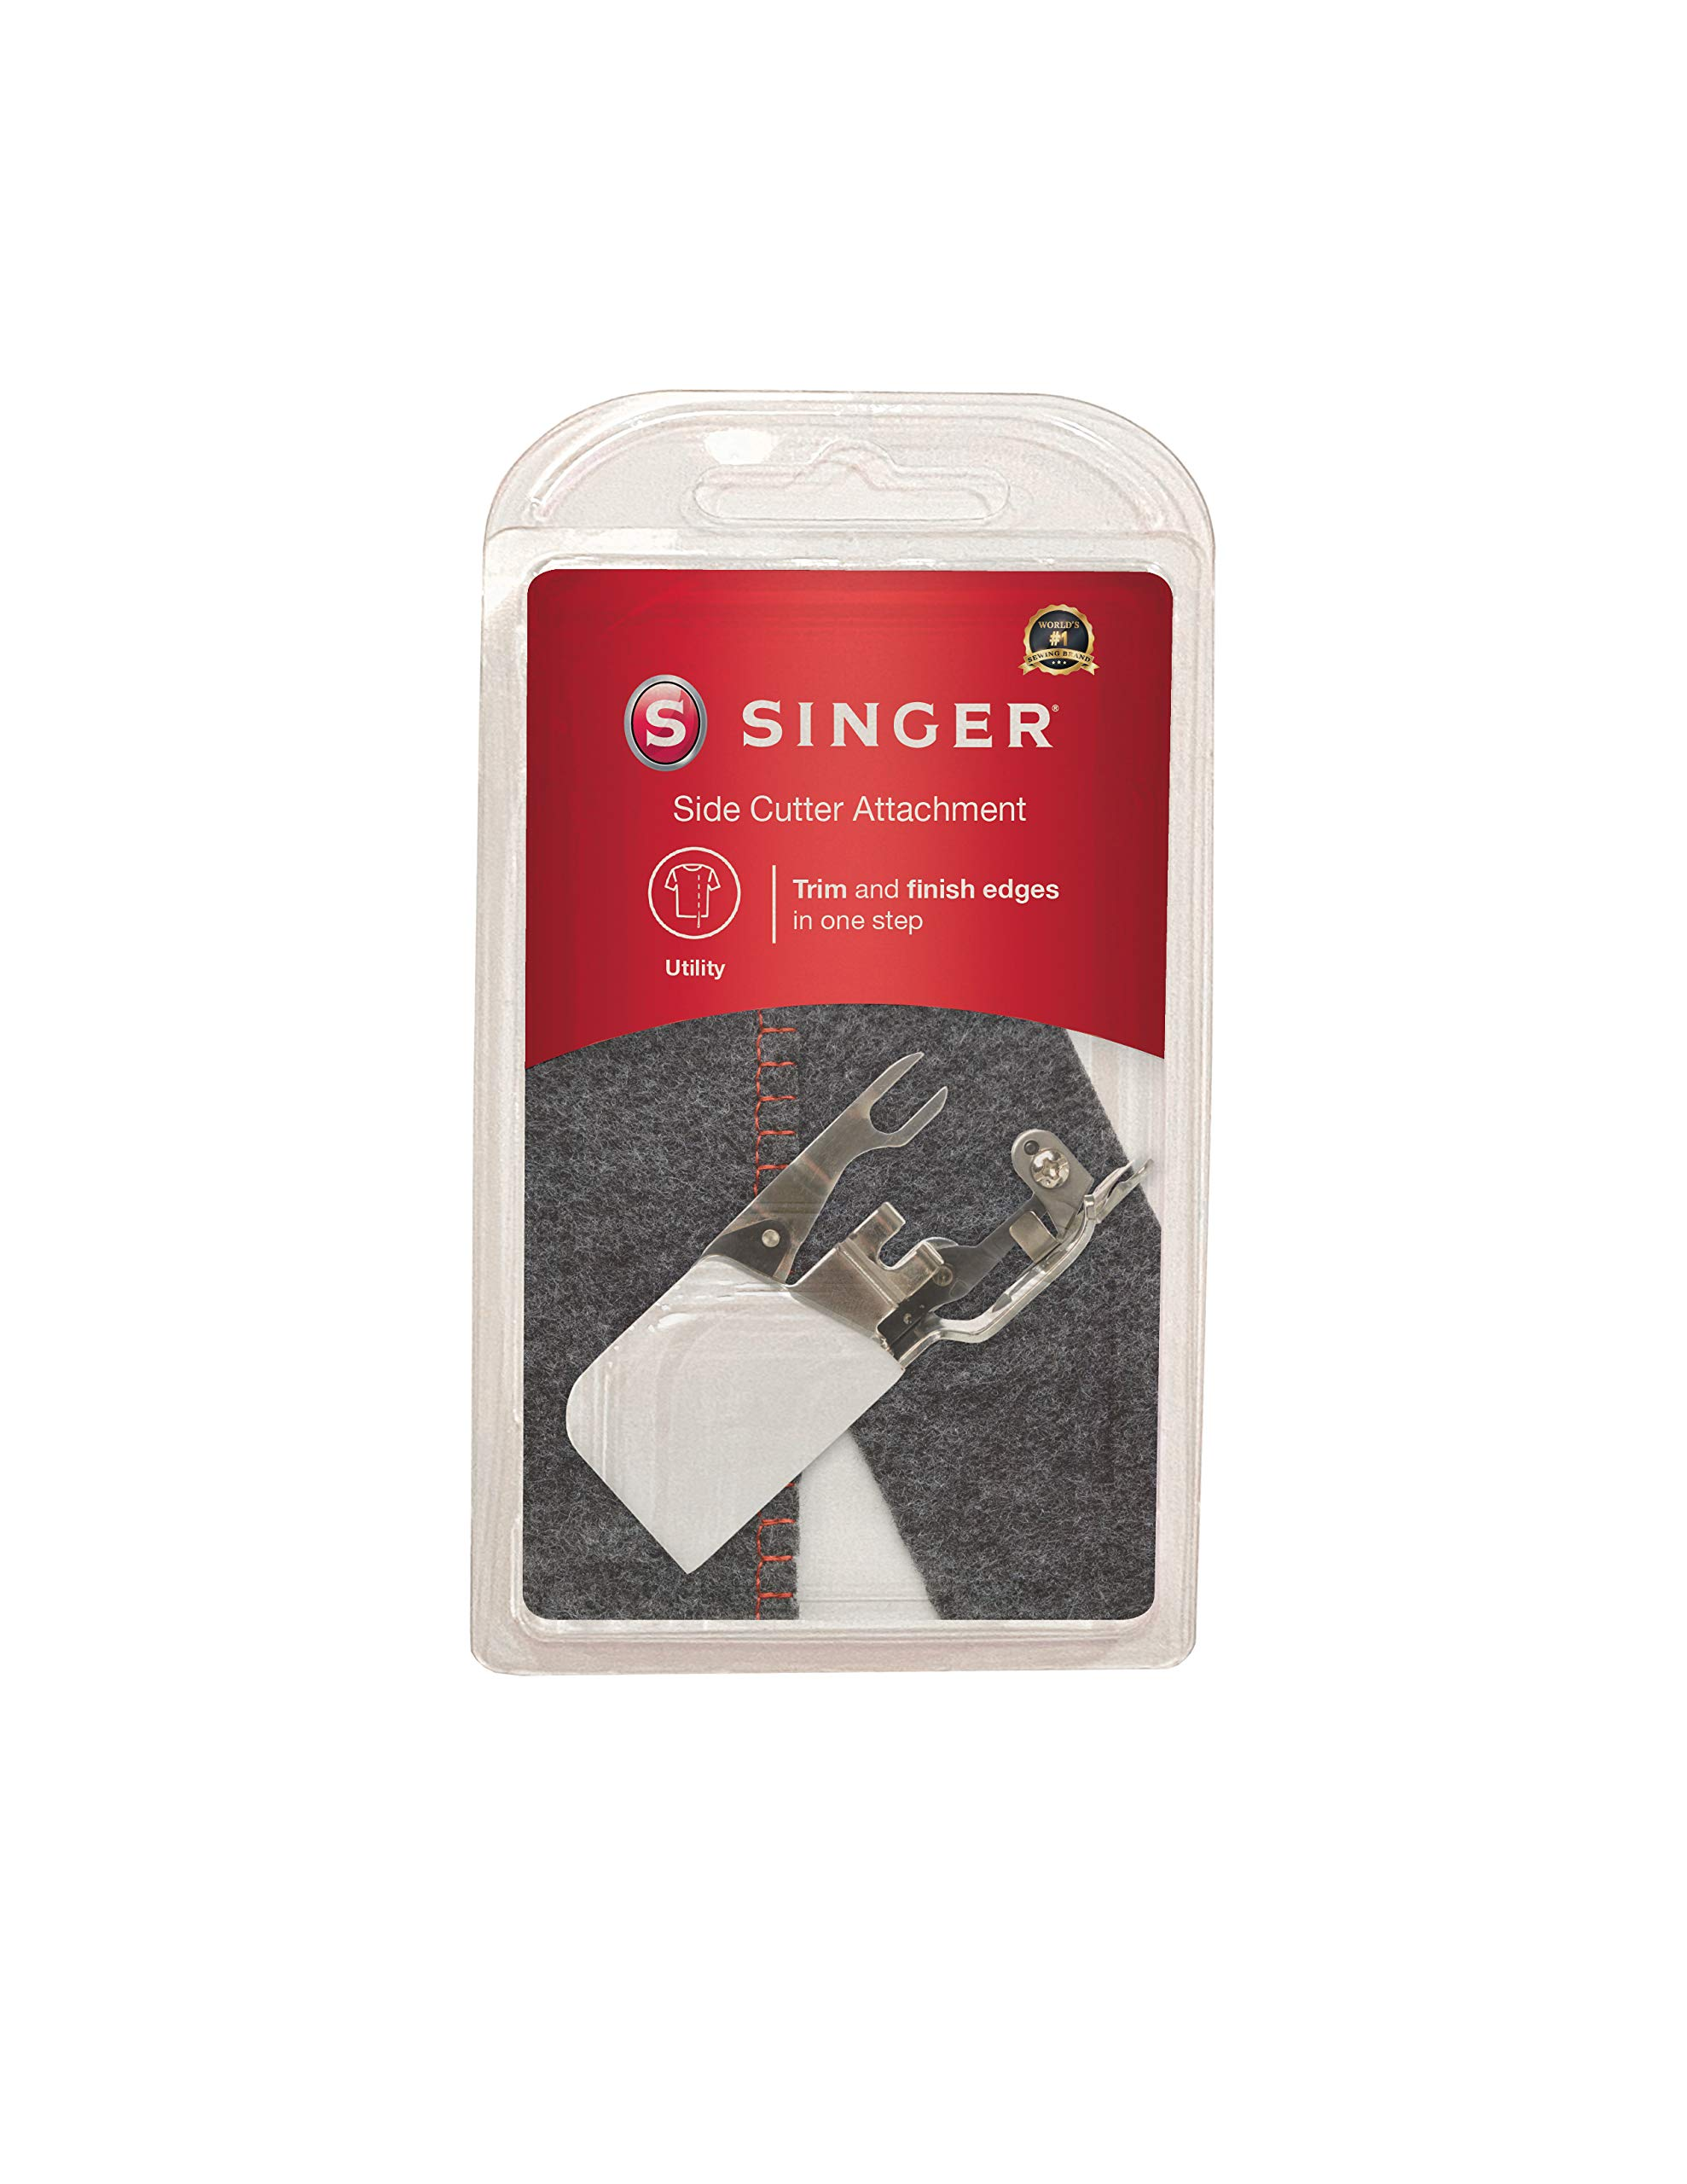 SINGER | Side Cutter Attachment Presser Foot, Simutaneously Trims & Hems Edges, Zig-Zag or Overstitch - Sewing Made Easy